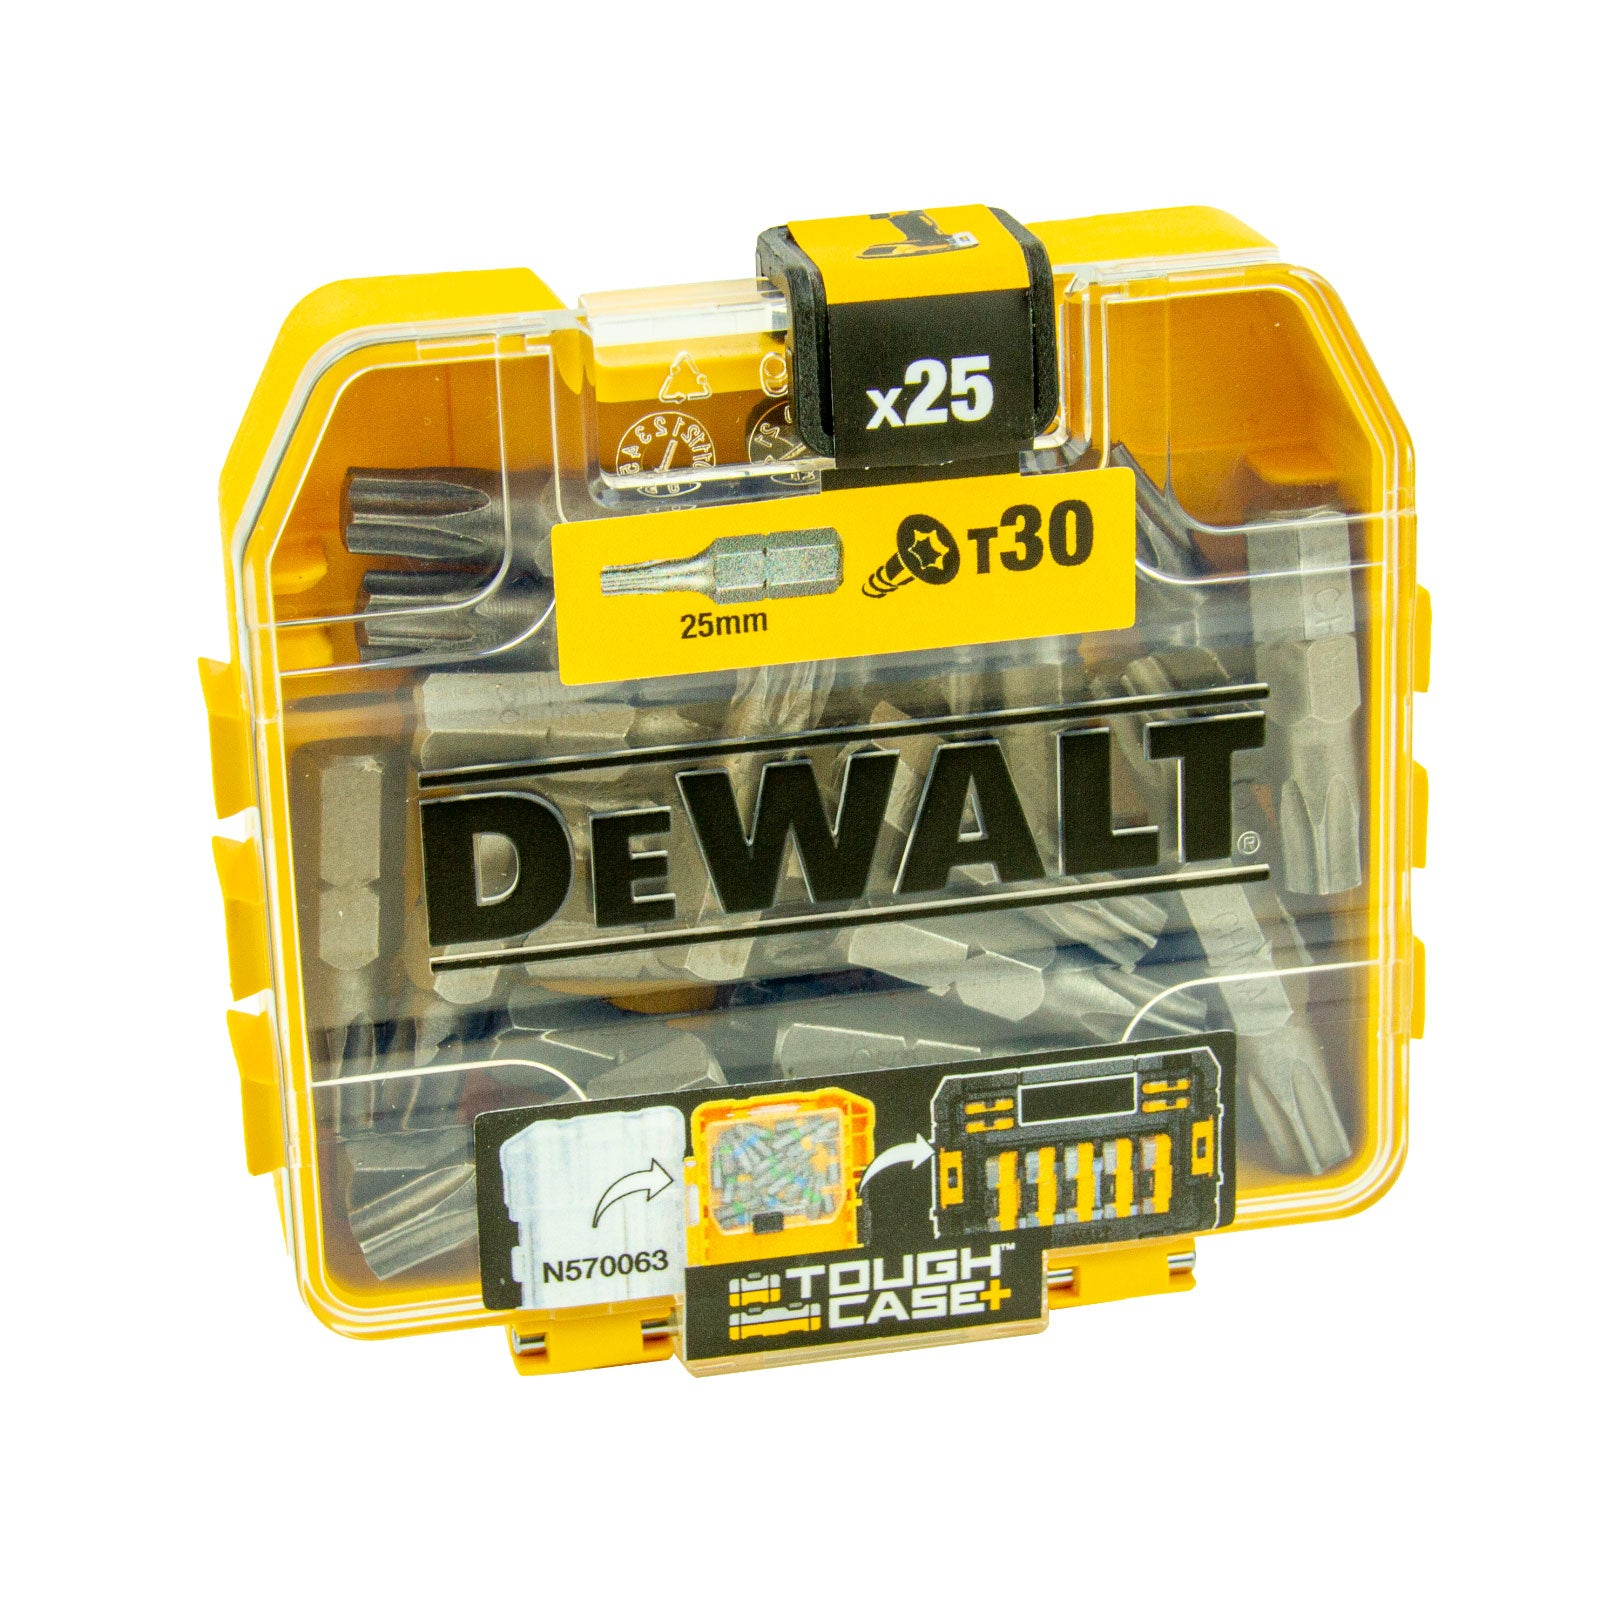 DeWalt 2 x Bit-Box DT7963-QZ, 50 x T30 Bit in Tough Box